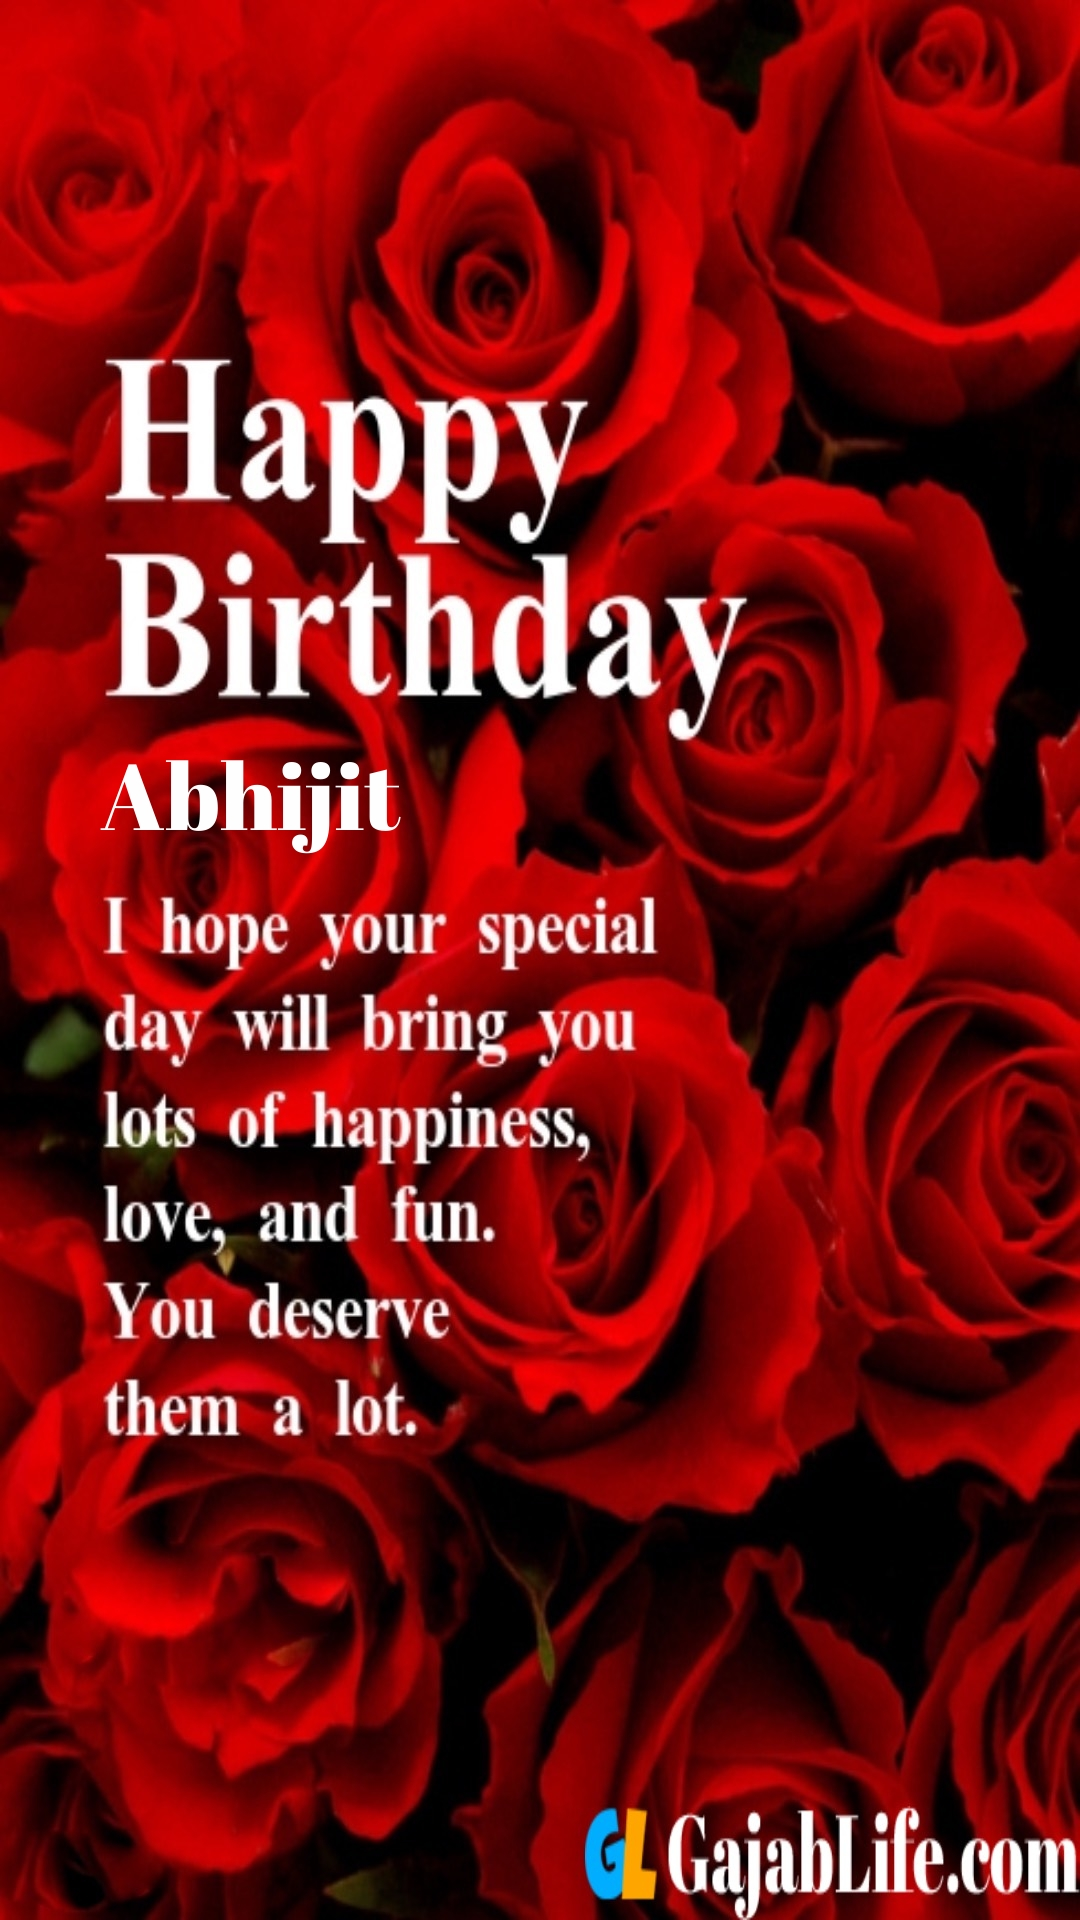 Abhijit birthday greeting card with rose & love